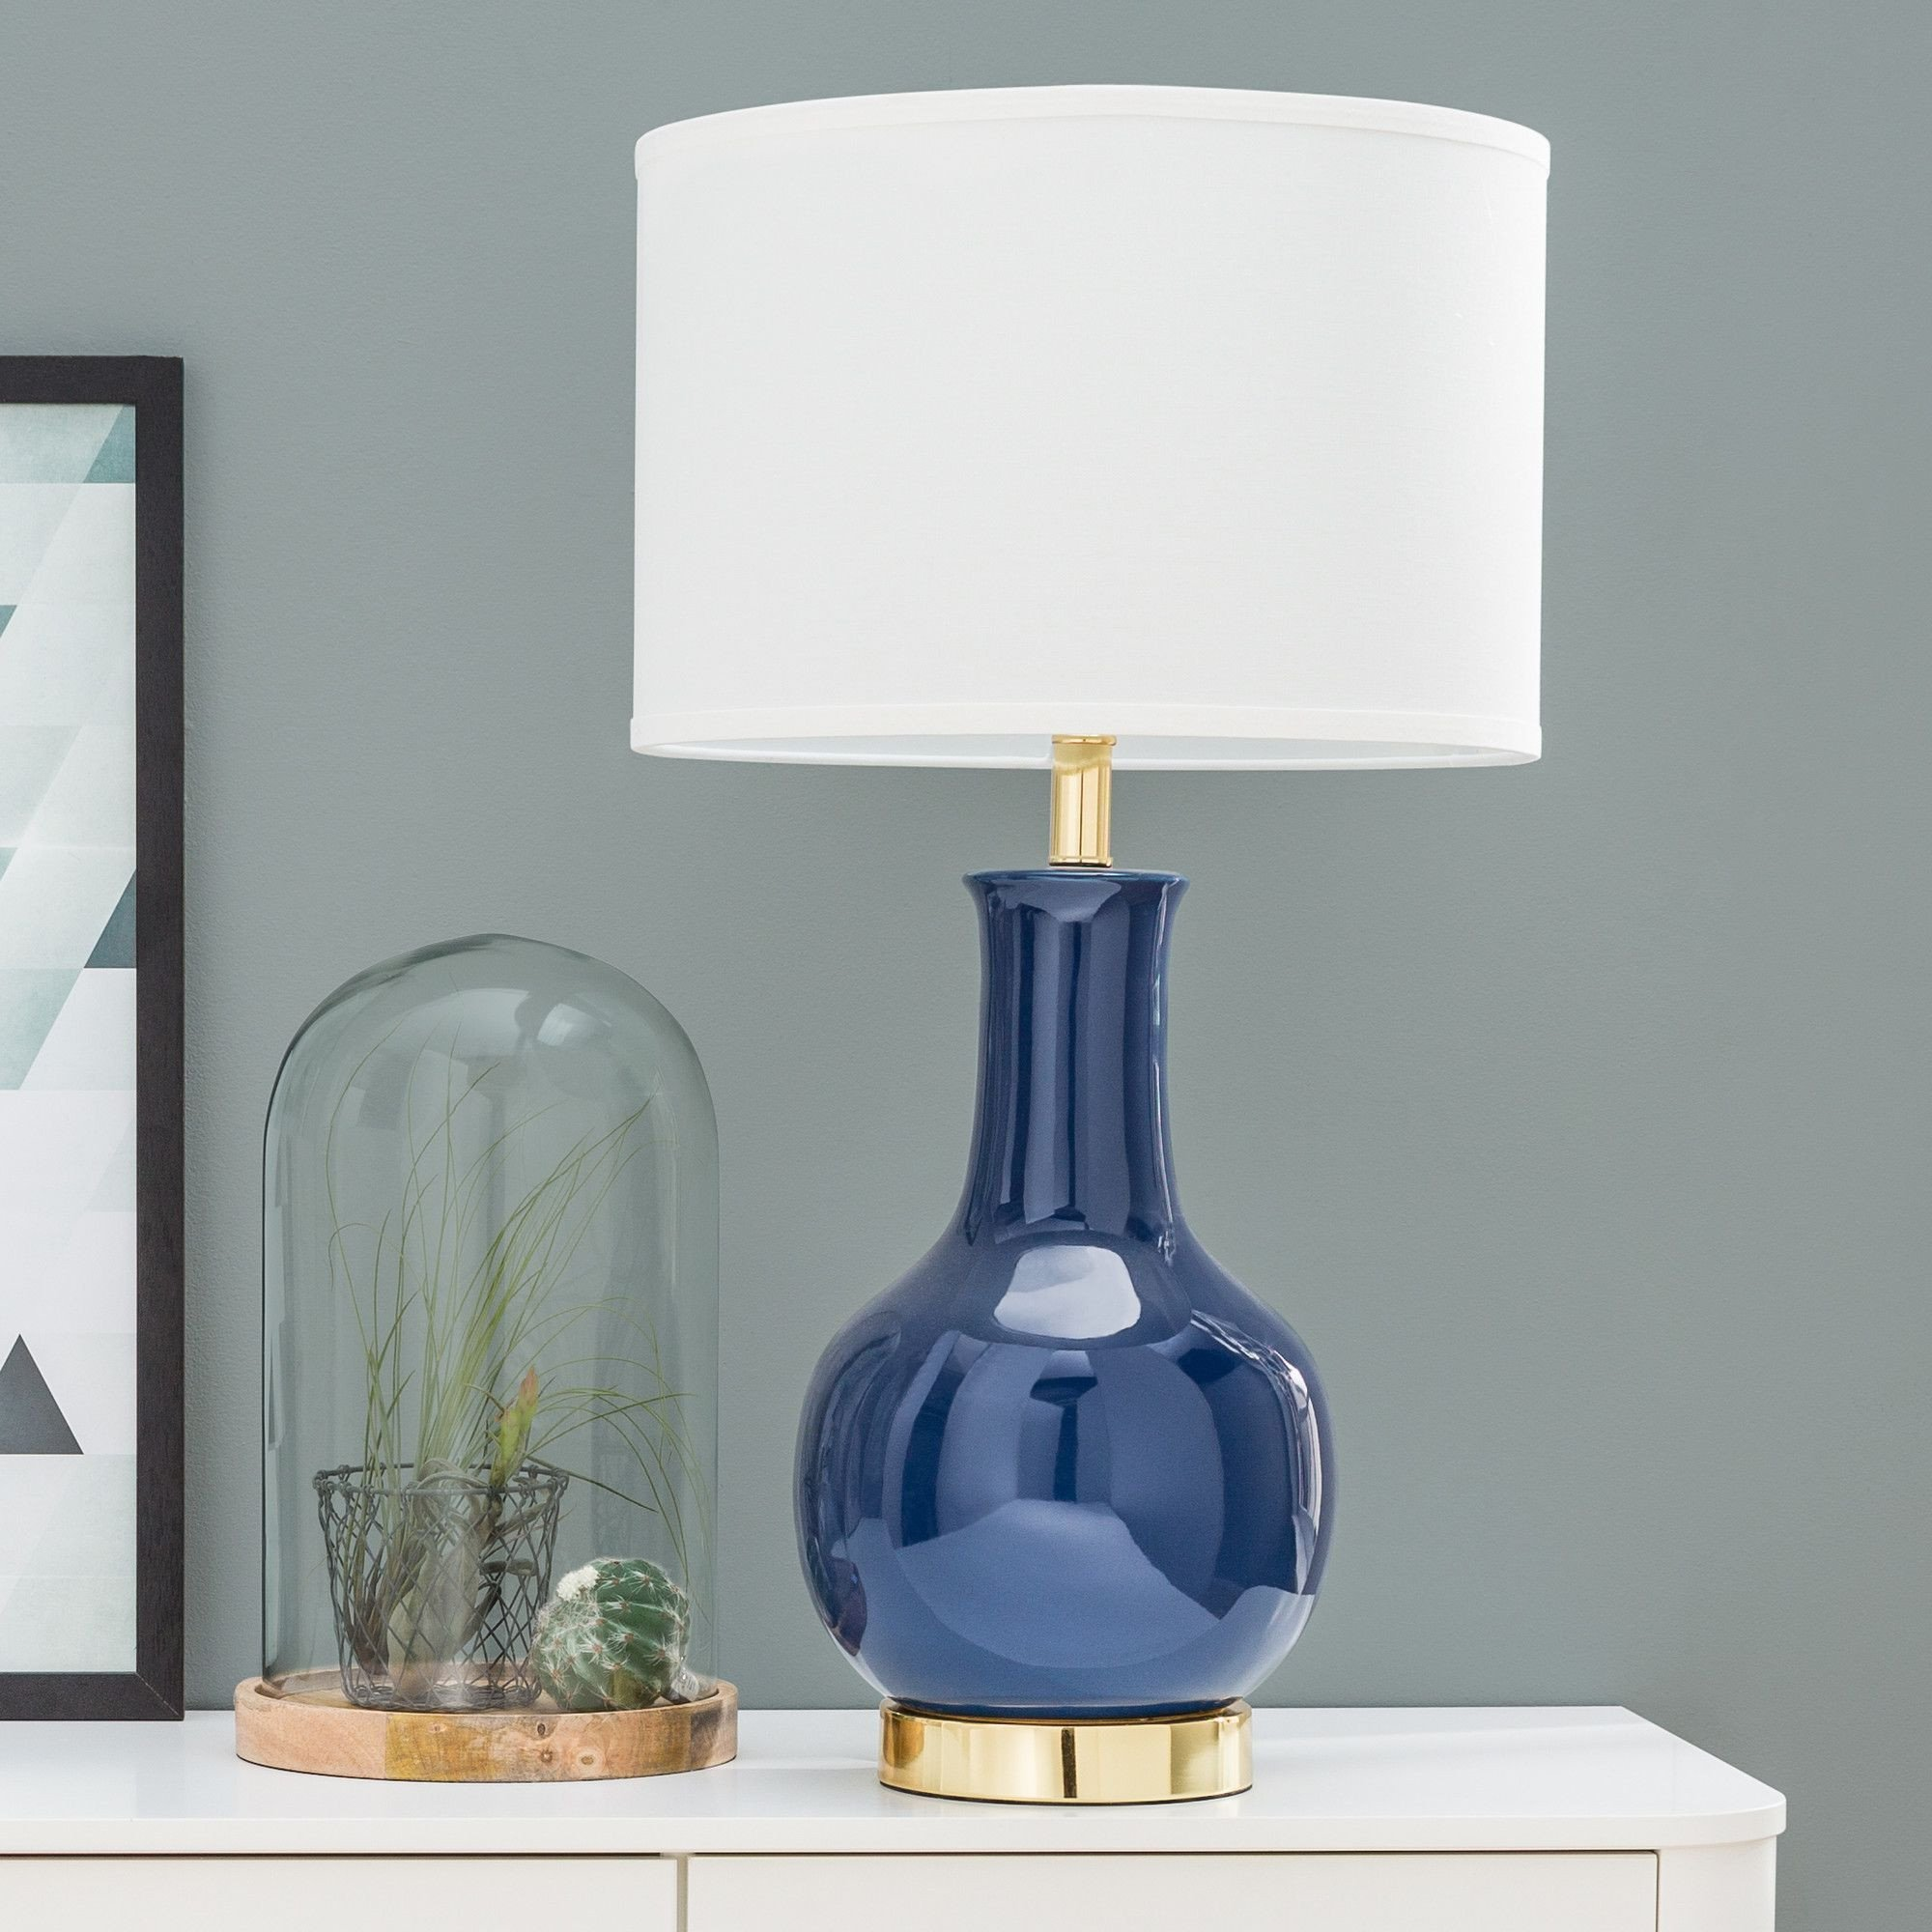 Cool Lamps for Bedroom Unique Escoto 70cm Table Lamp